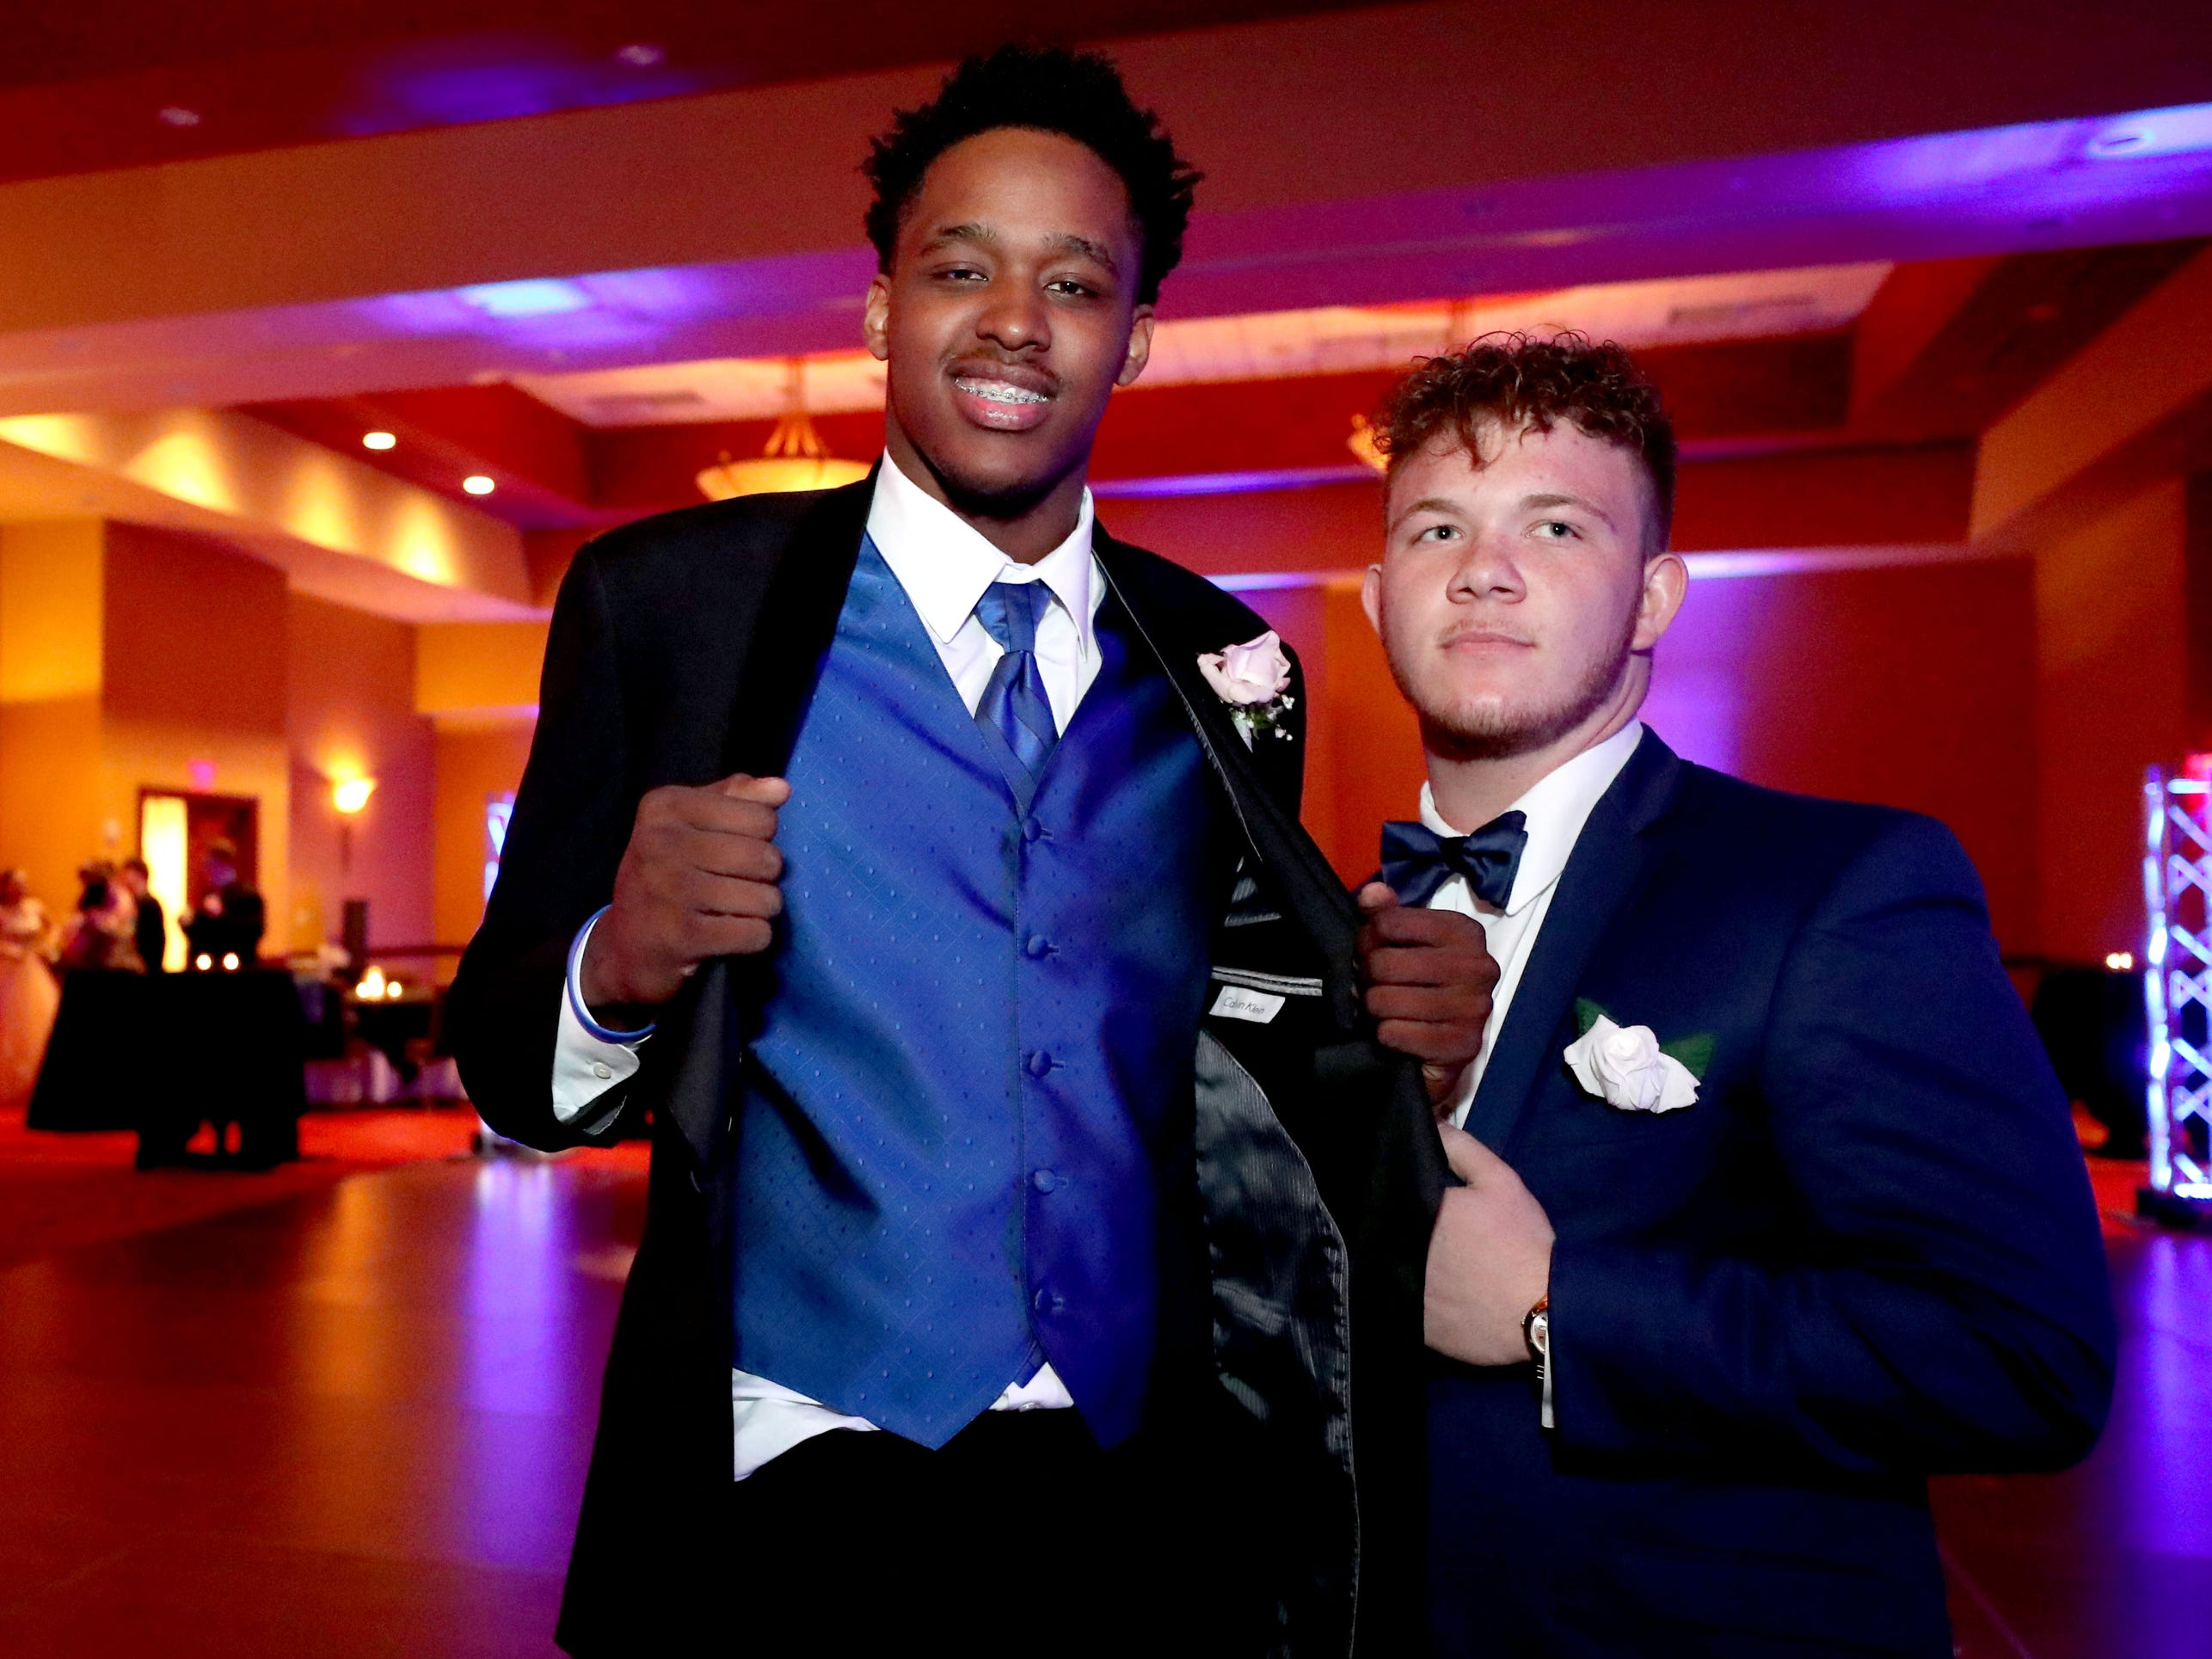 DeMarious Stoudemire, left and Carl Gudvangen show off their tuxes at Eagleville's Prom held at Embassy Suites, in Murfreesboro on Thursday April 5, 2019.